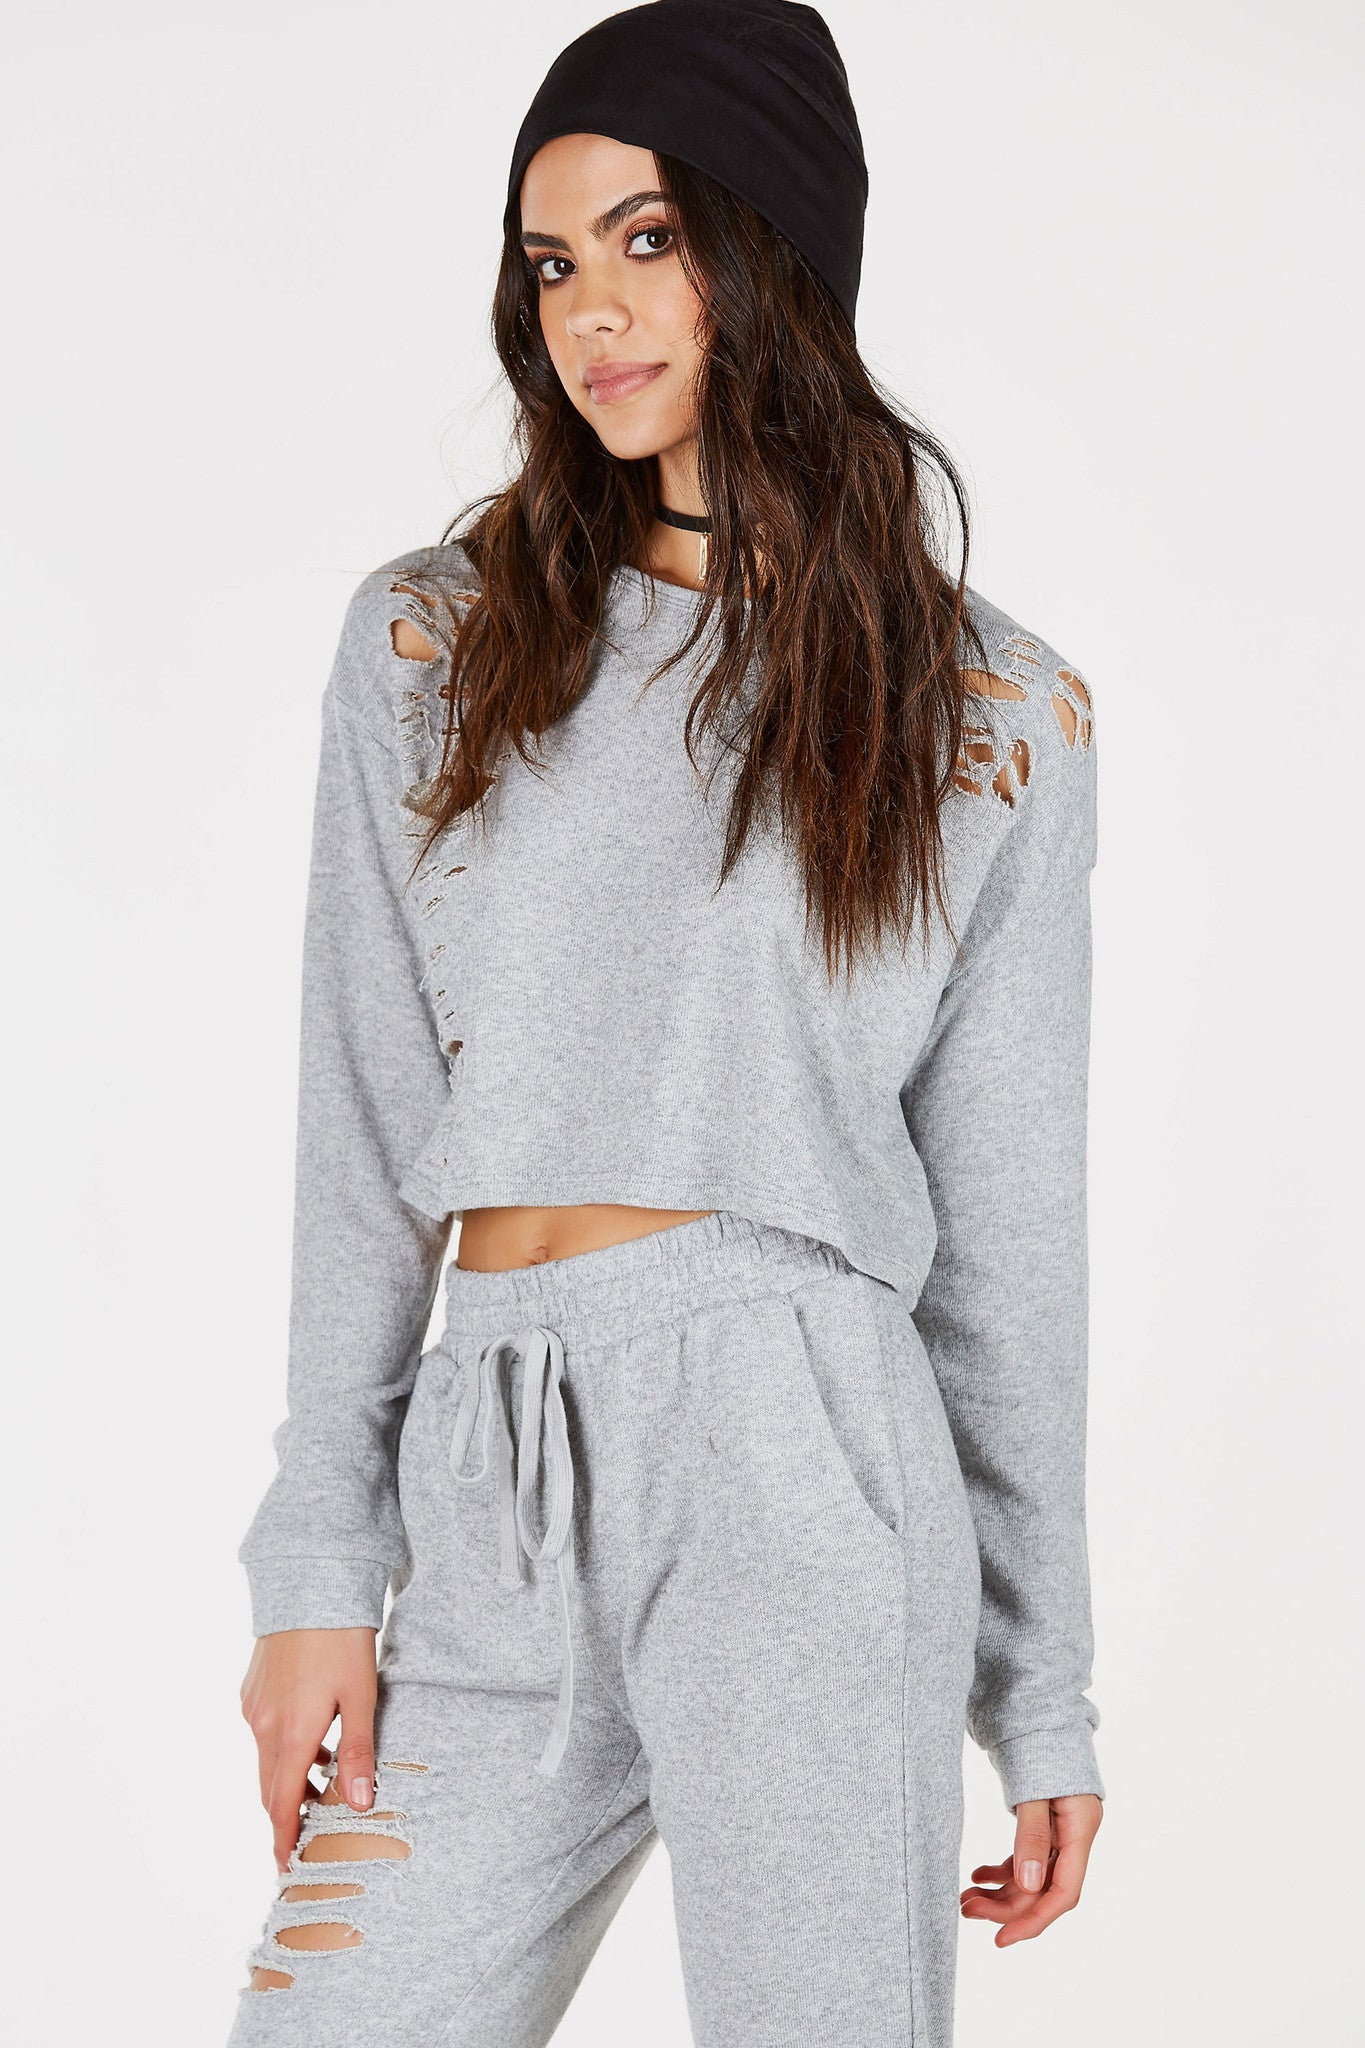 Get on trend with this heavily distressed sweatshirt! Lightweight material makes it perfect for transitioning. Classic crew neckline with a stylish cropped hem. Pair with matching bottoms for an effortless on-the-go outfit!